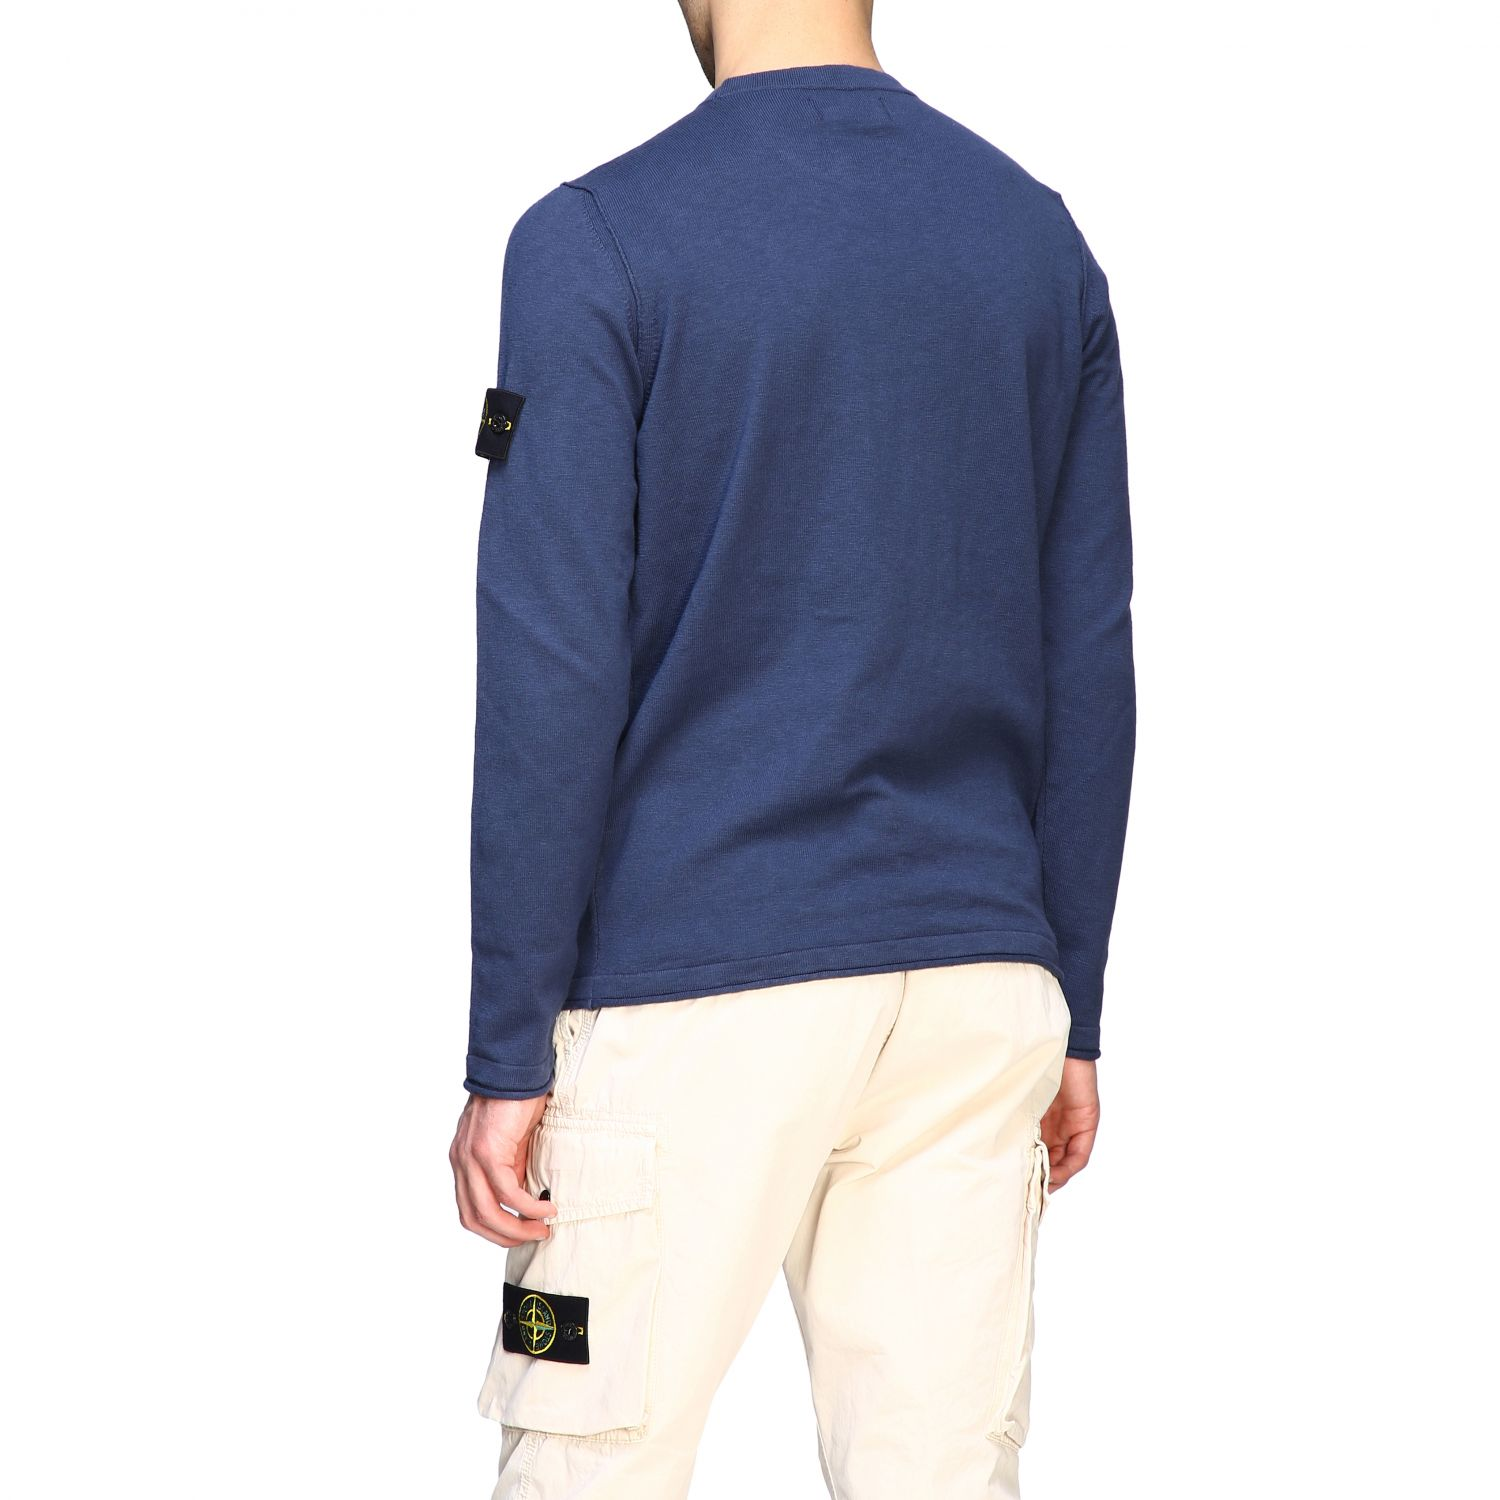 Stone Island crewneck sweater with logo blue 3